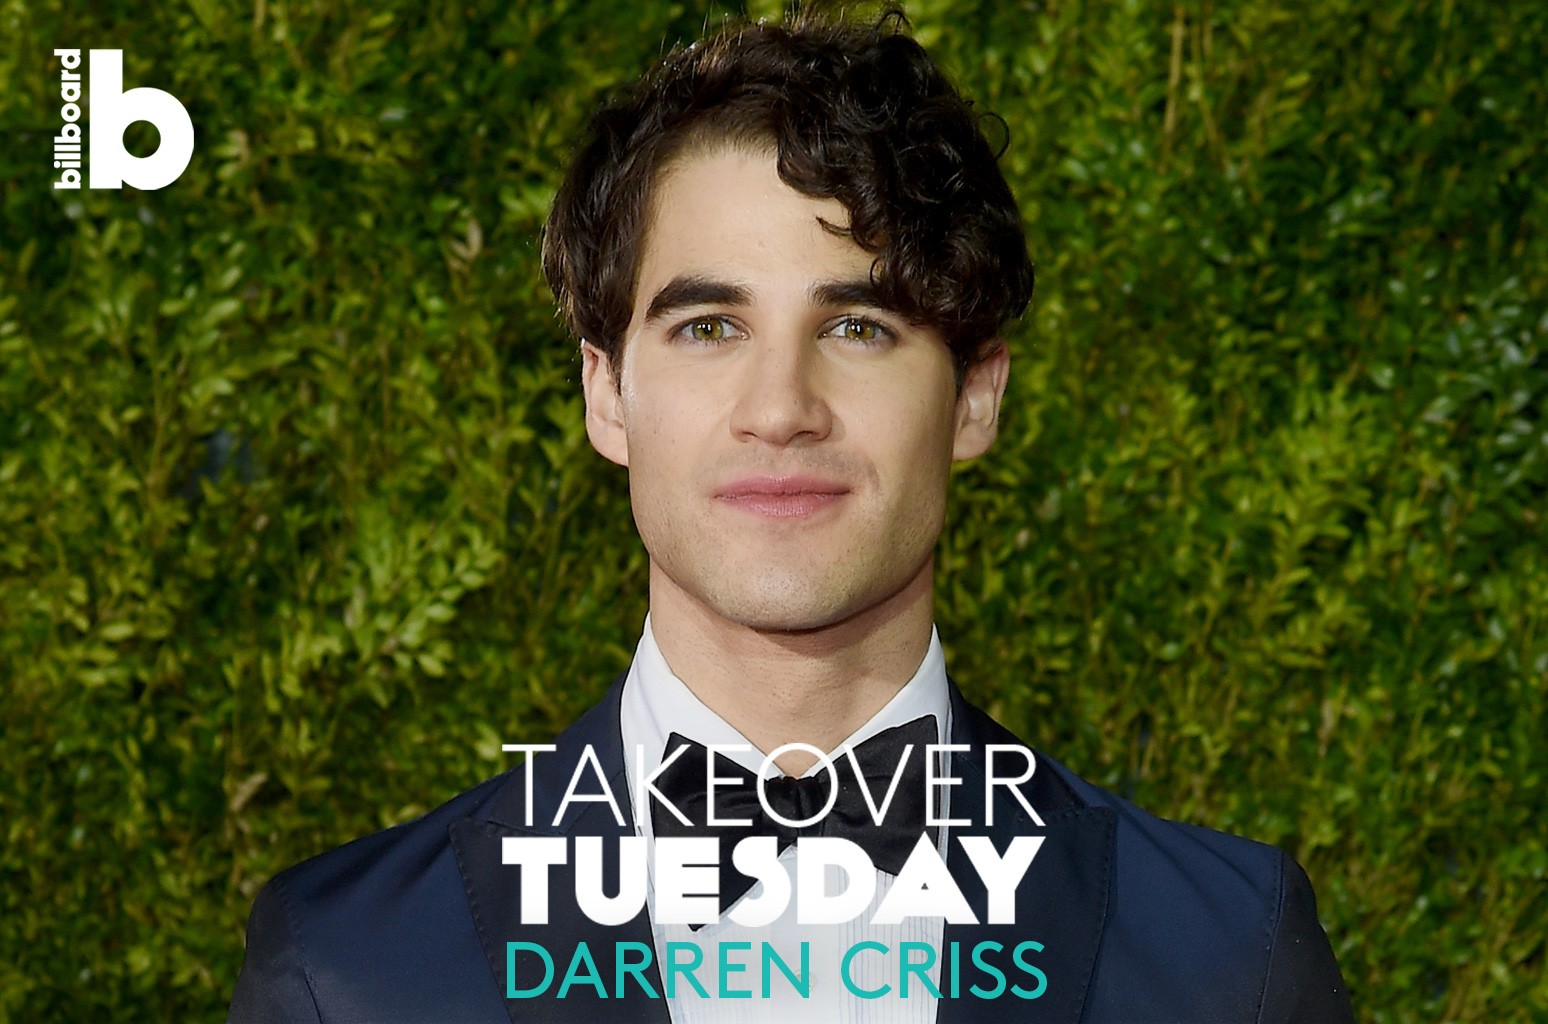 Takeover Tuesday with Darren Criss